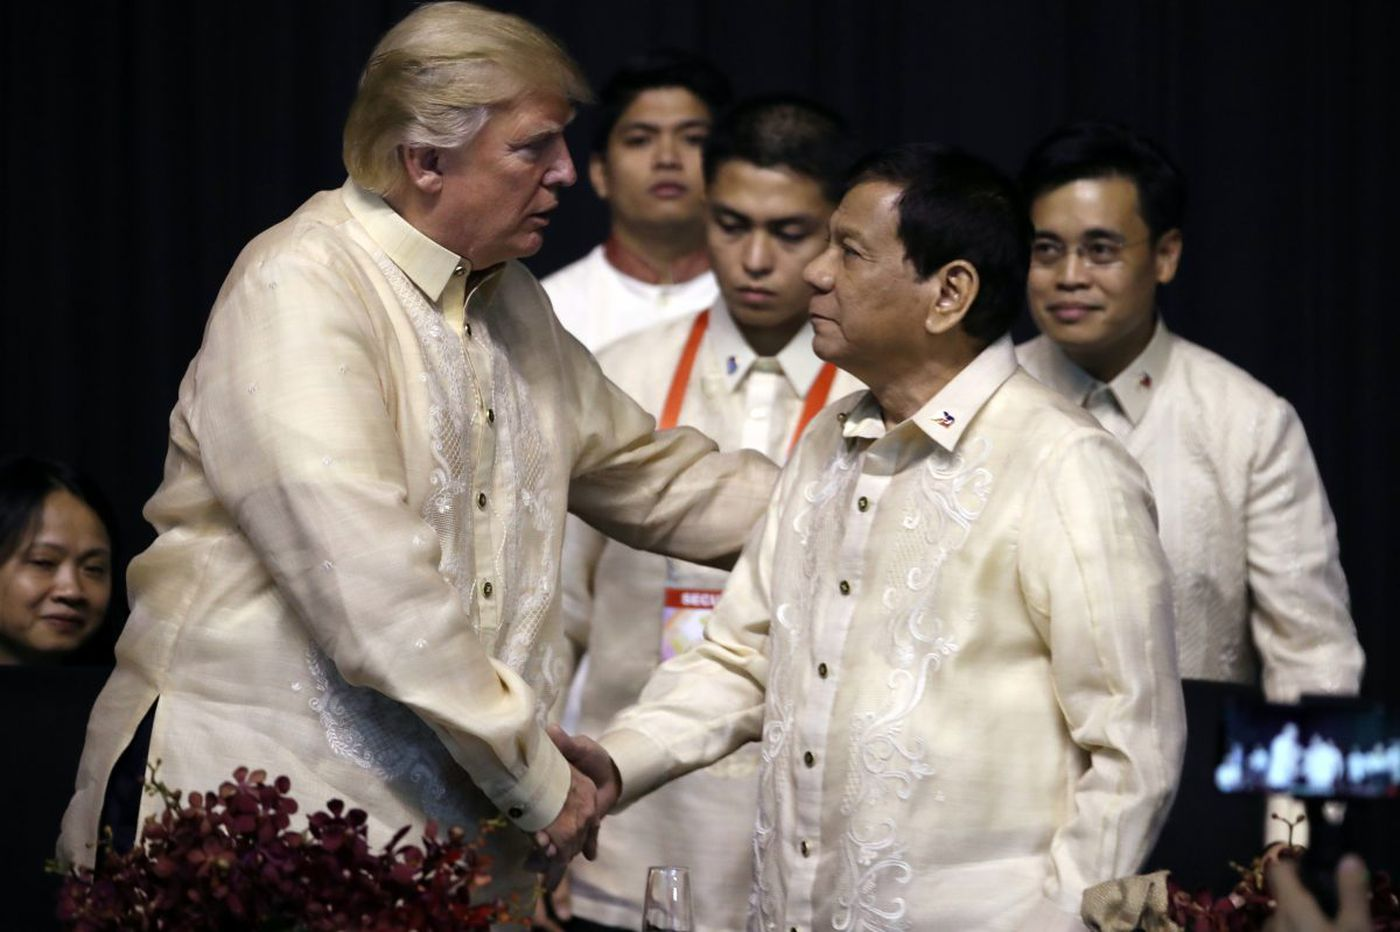 Why were President Trump and President Duterte twinning?